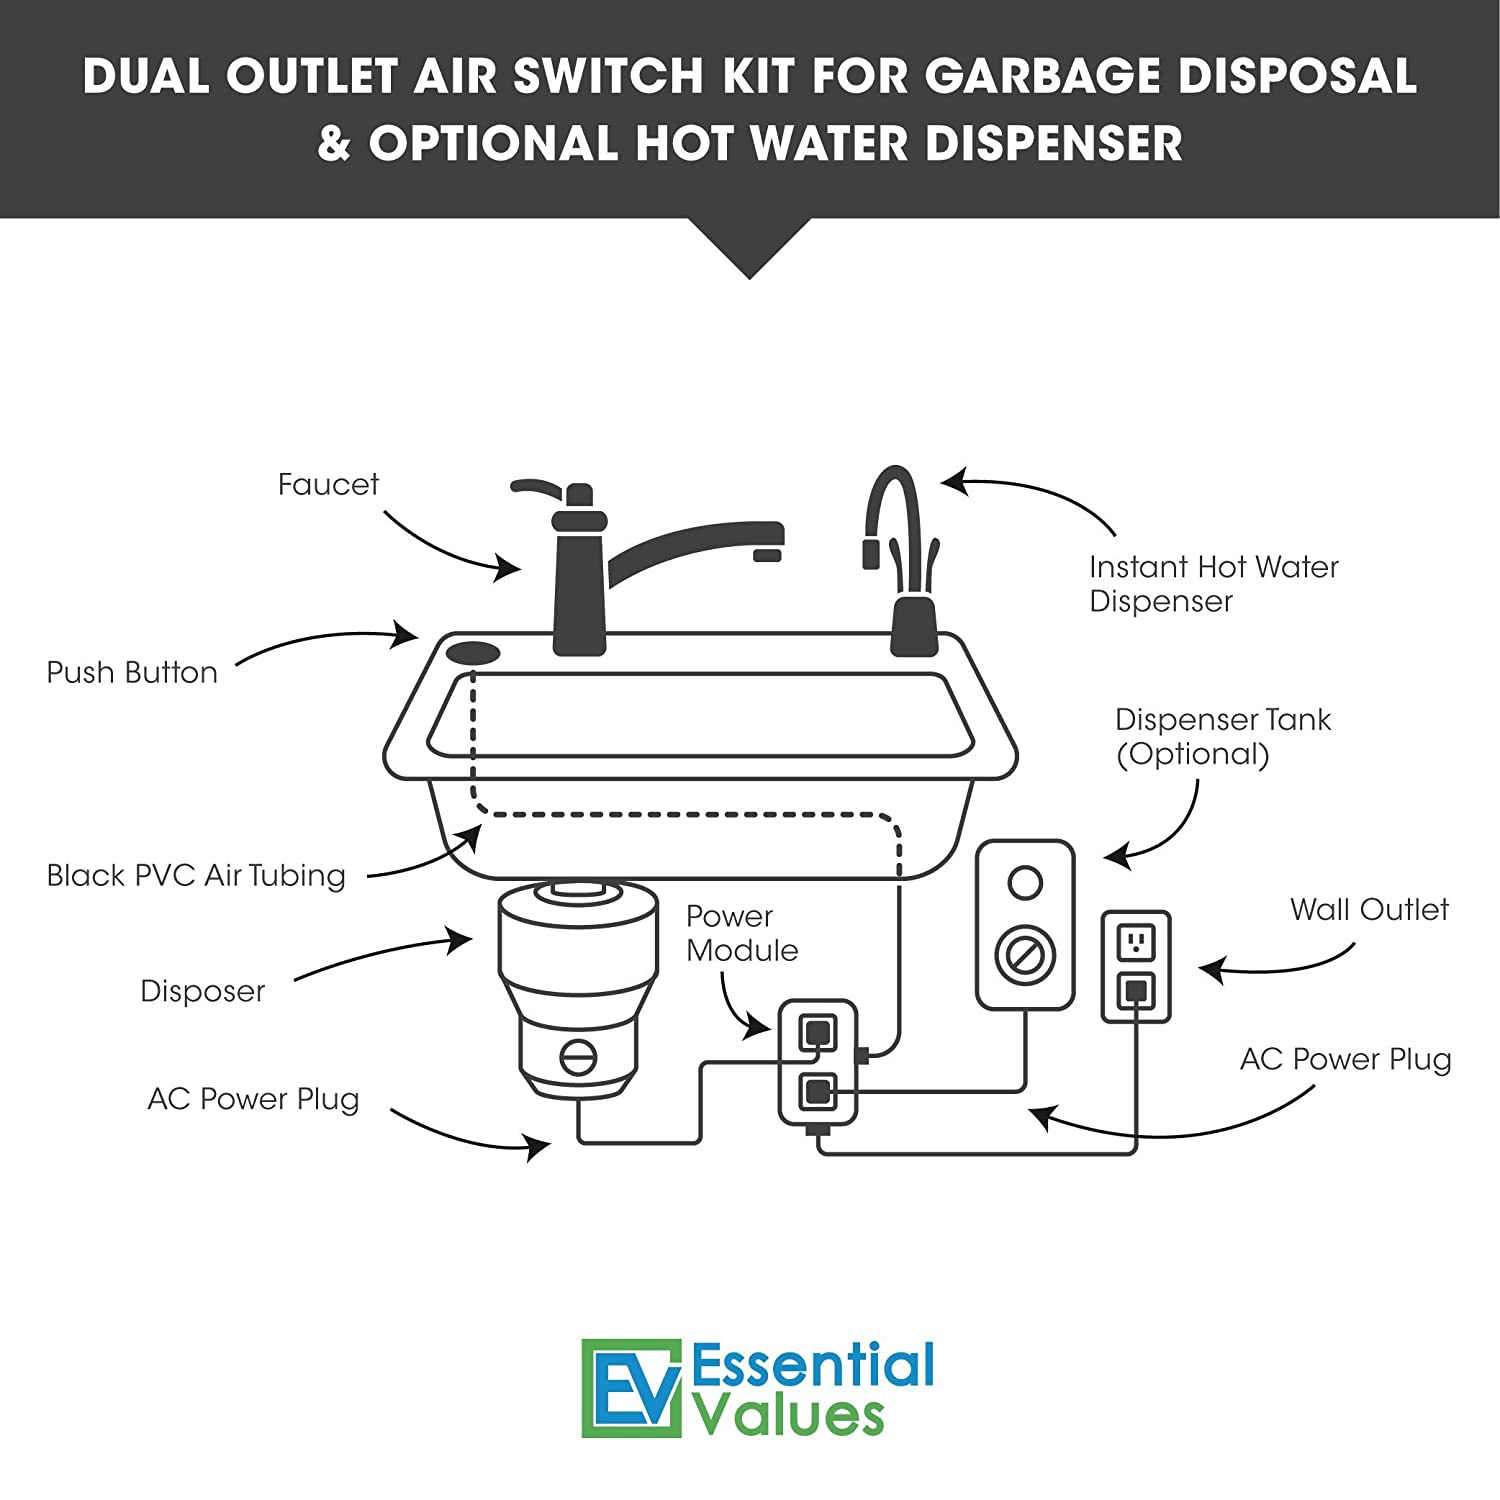 Double Garbage Disposal Switch Wiring Diagram | Wiring Liry on